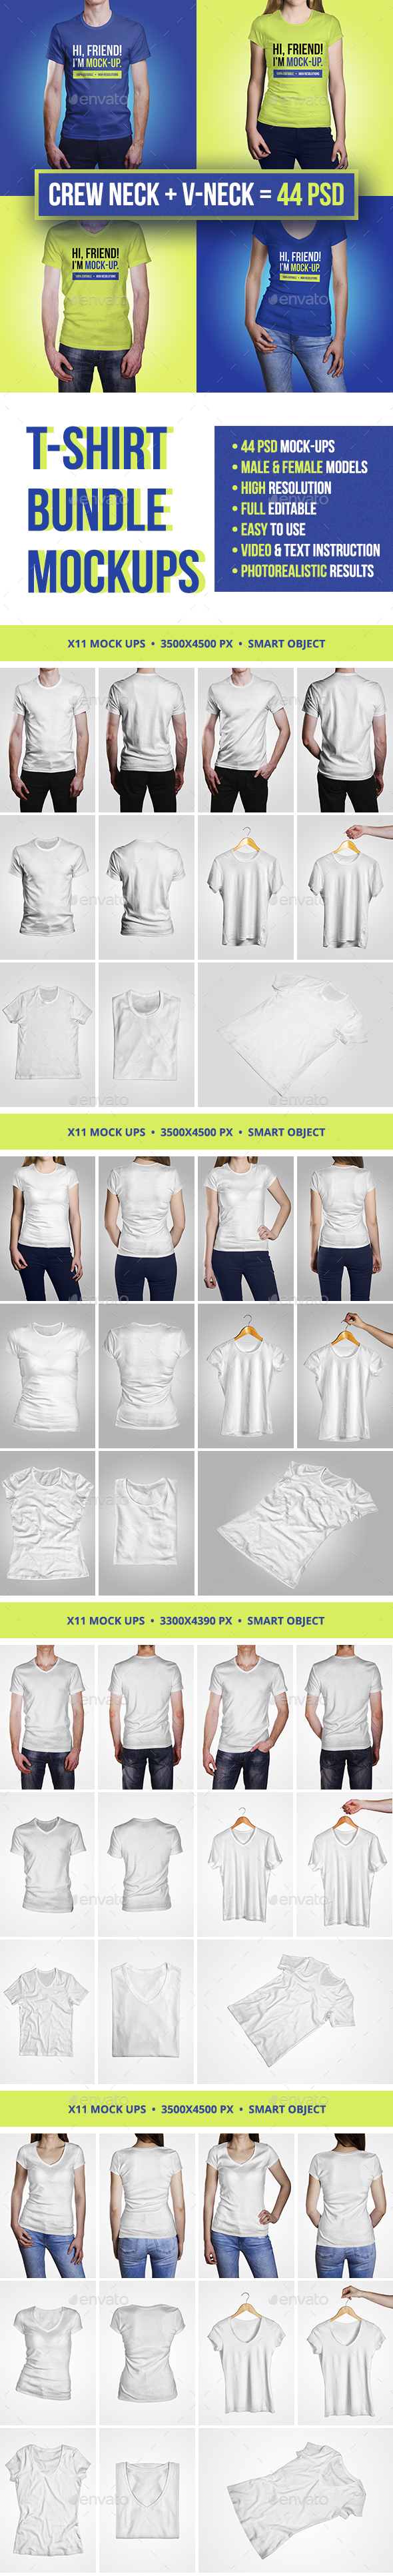 GraphicRiver T-Shirt Bundle Mockup 20821270